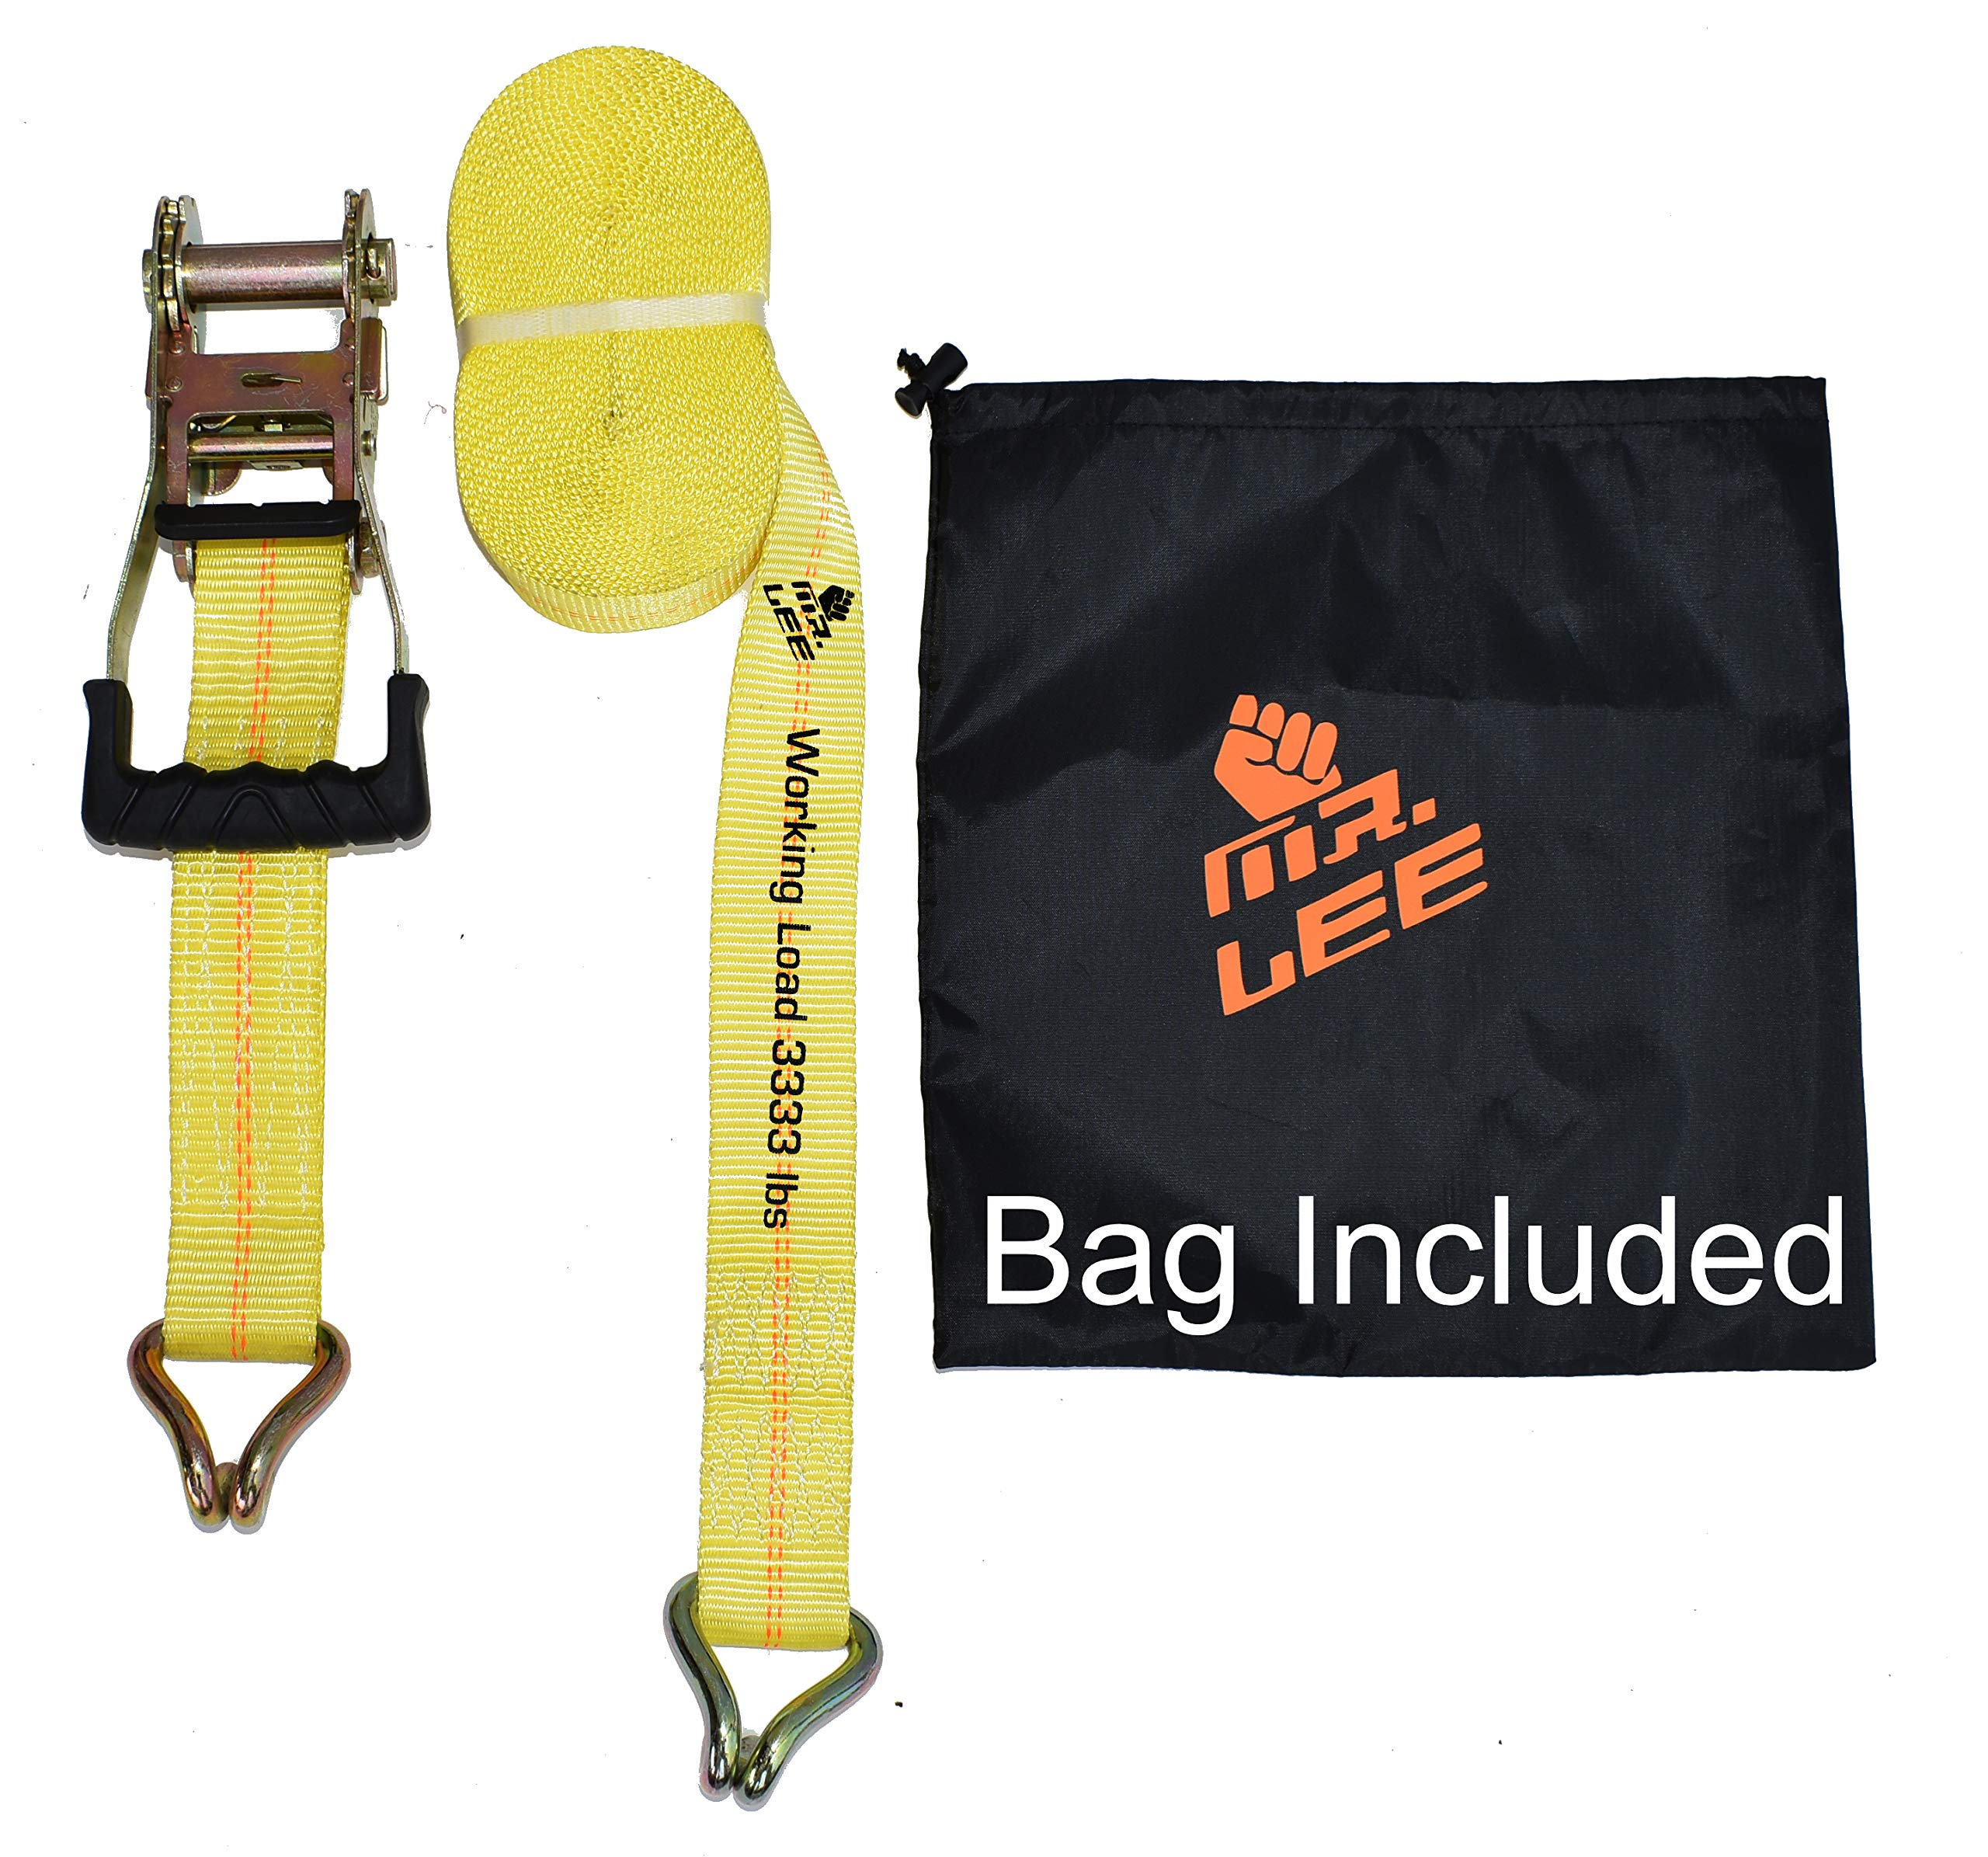 Mr. Lee WT-02012 Ratchet Tie Down Straps 27 X 2 Breaking Strength 10,000lbs, Double J Hooks 1PK, Trailer Tie Downs, Cargo Straps, Motorcycle Tie Downs, Truck Tie Downs, Car Tie Down Straps